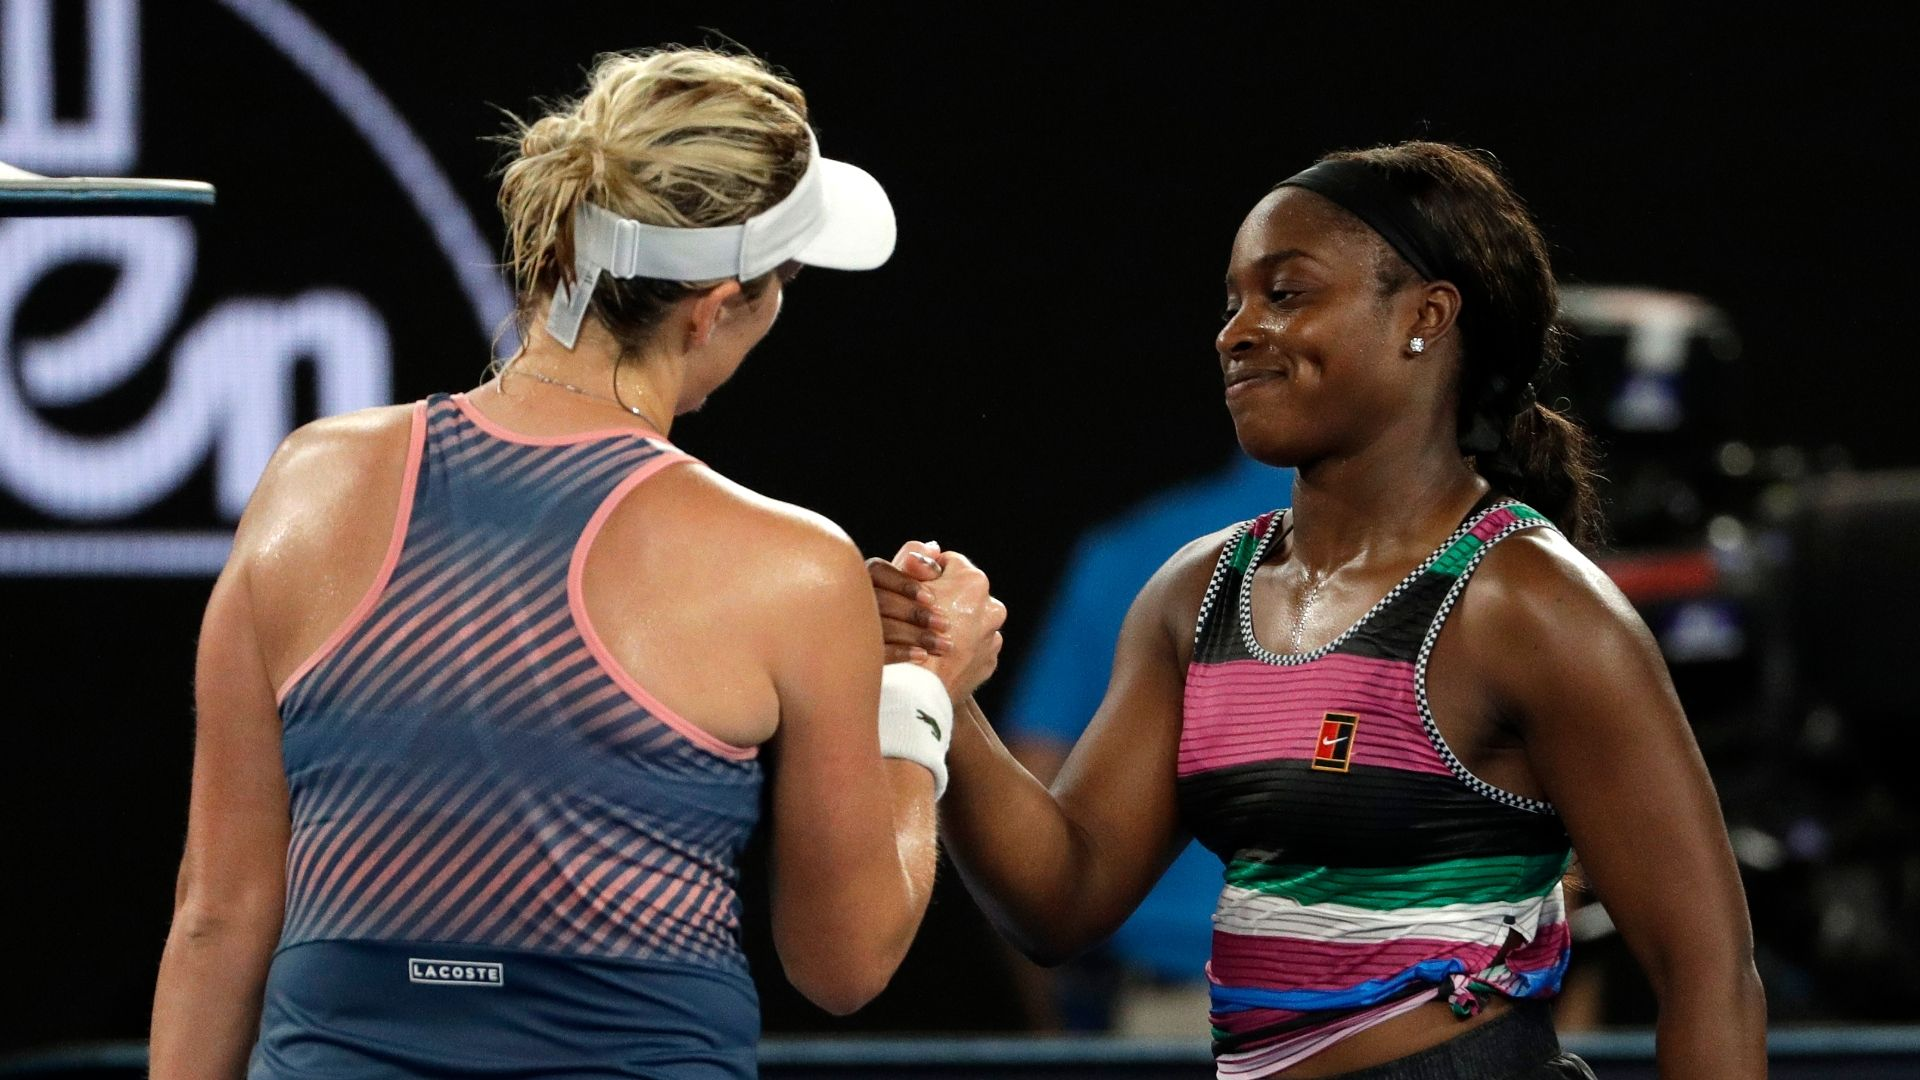 Stephens upset in 4th round of Australian Open